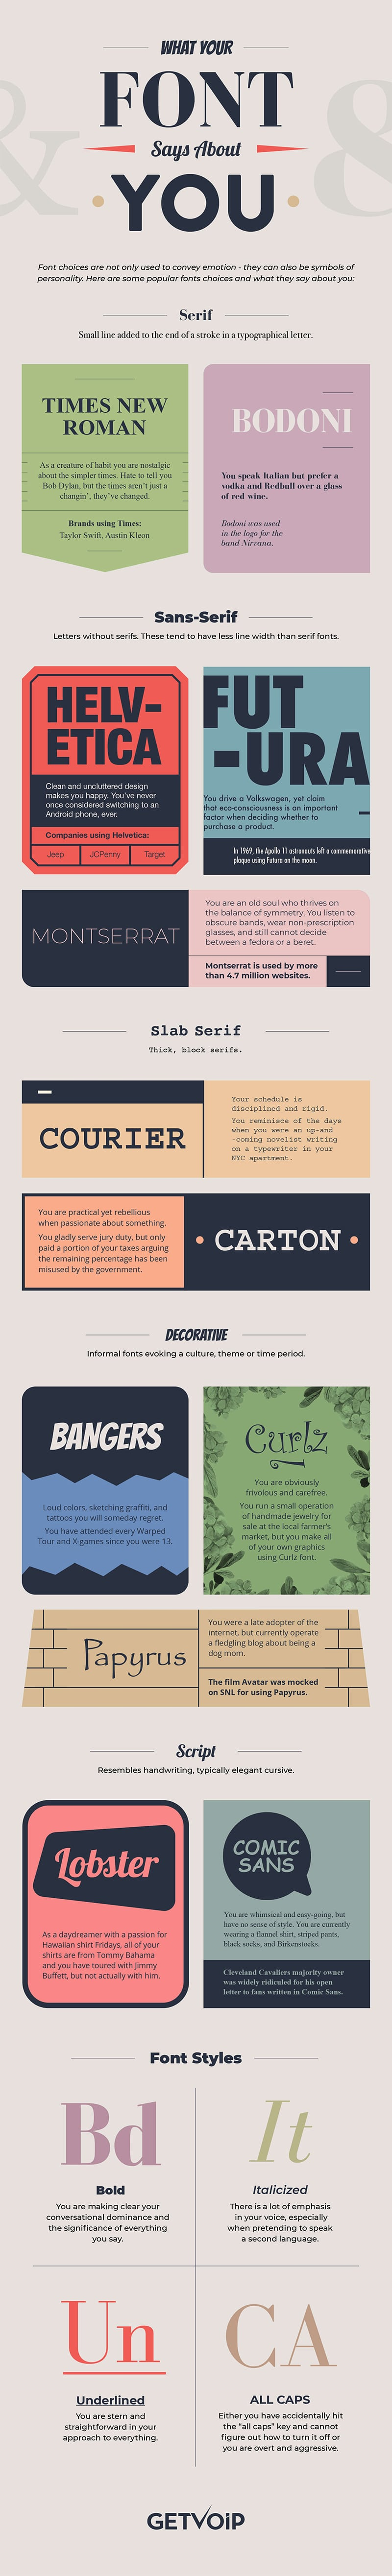 Infographic looking at website fonts and their meanings